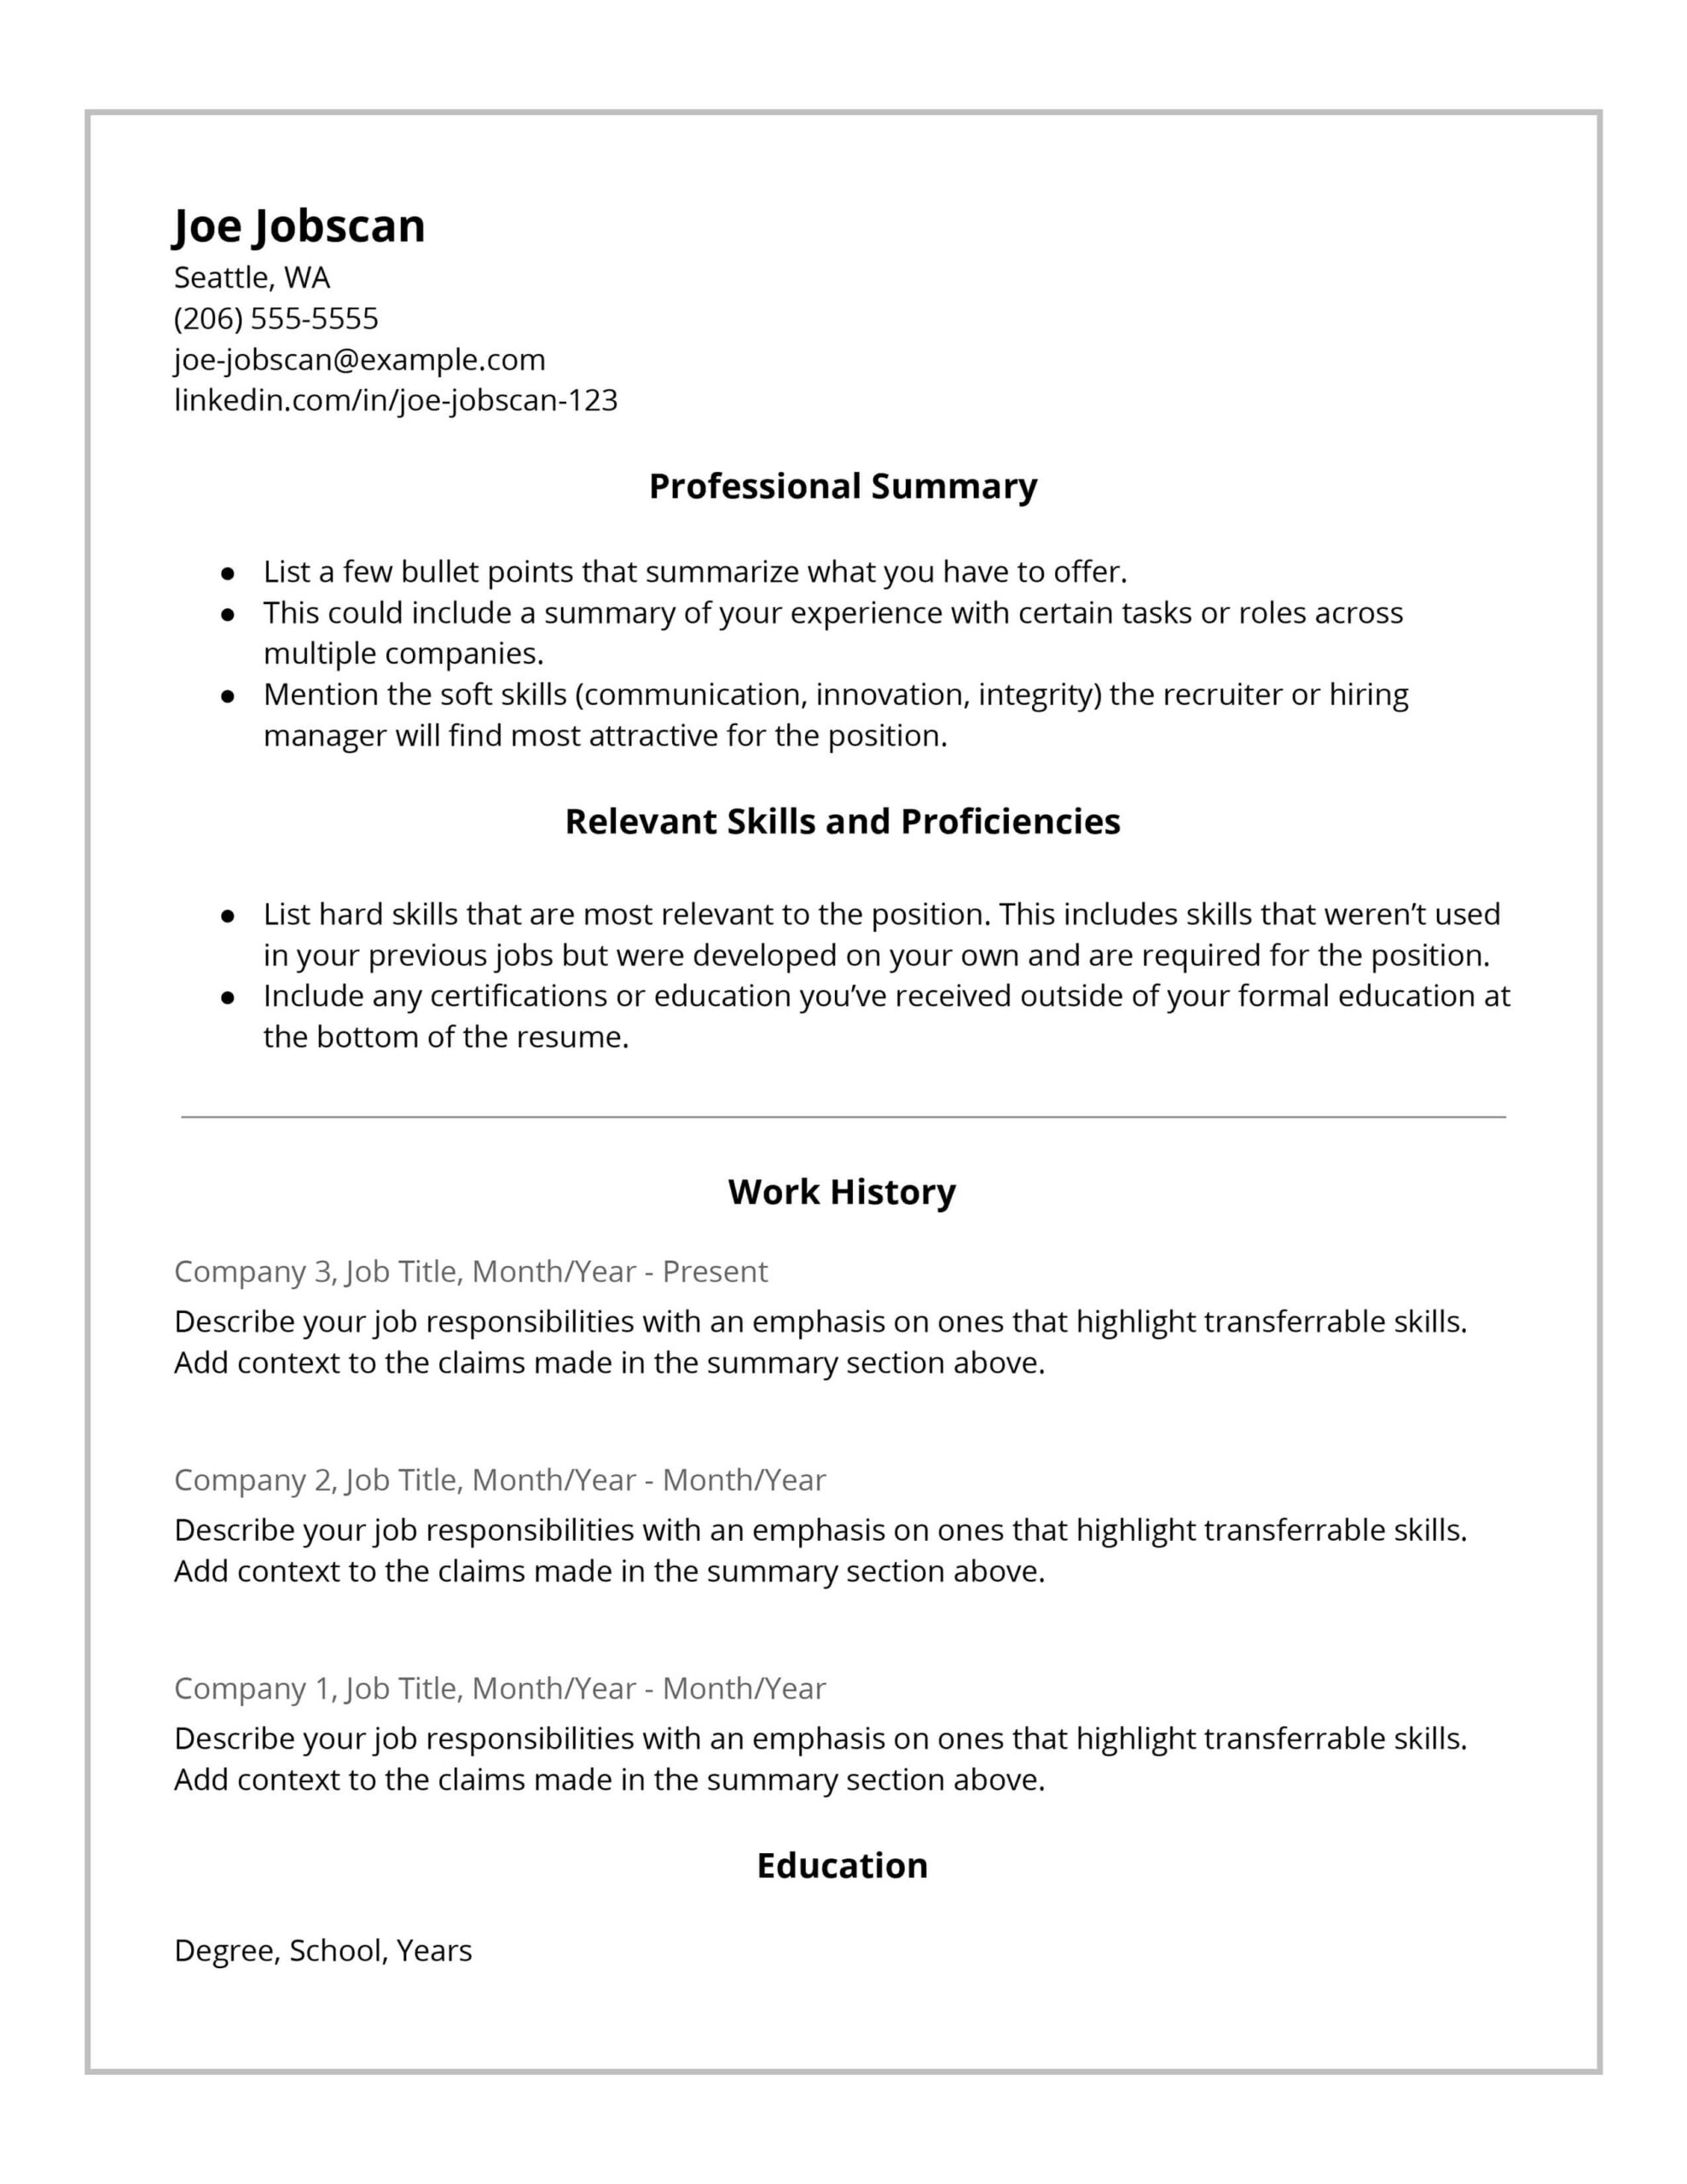 recruiters hate the functional resume format here good work skills for hybrid template Resume Good Work Skills For Resume